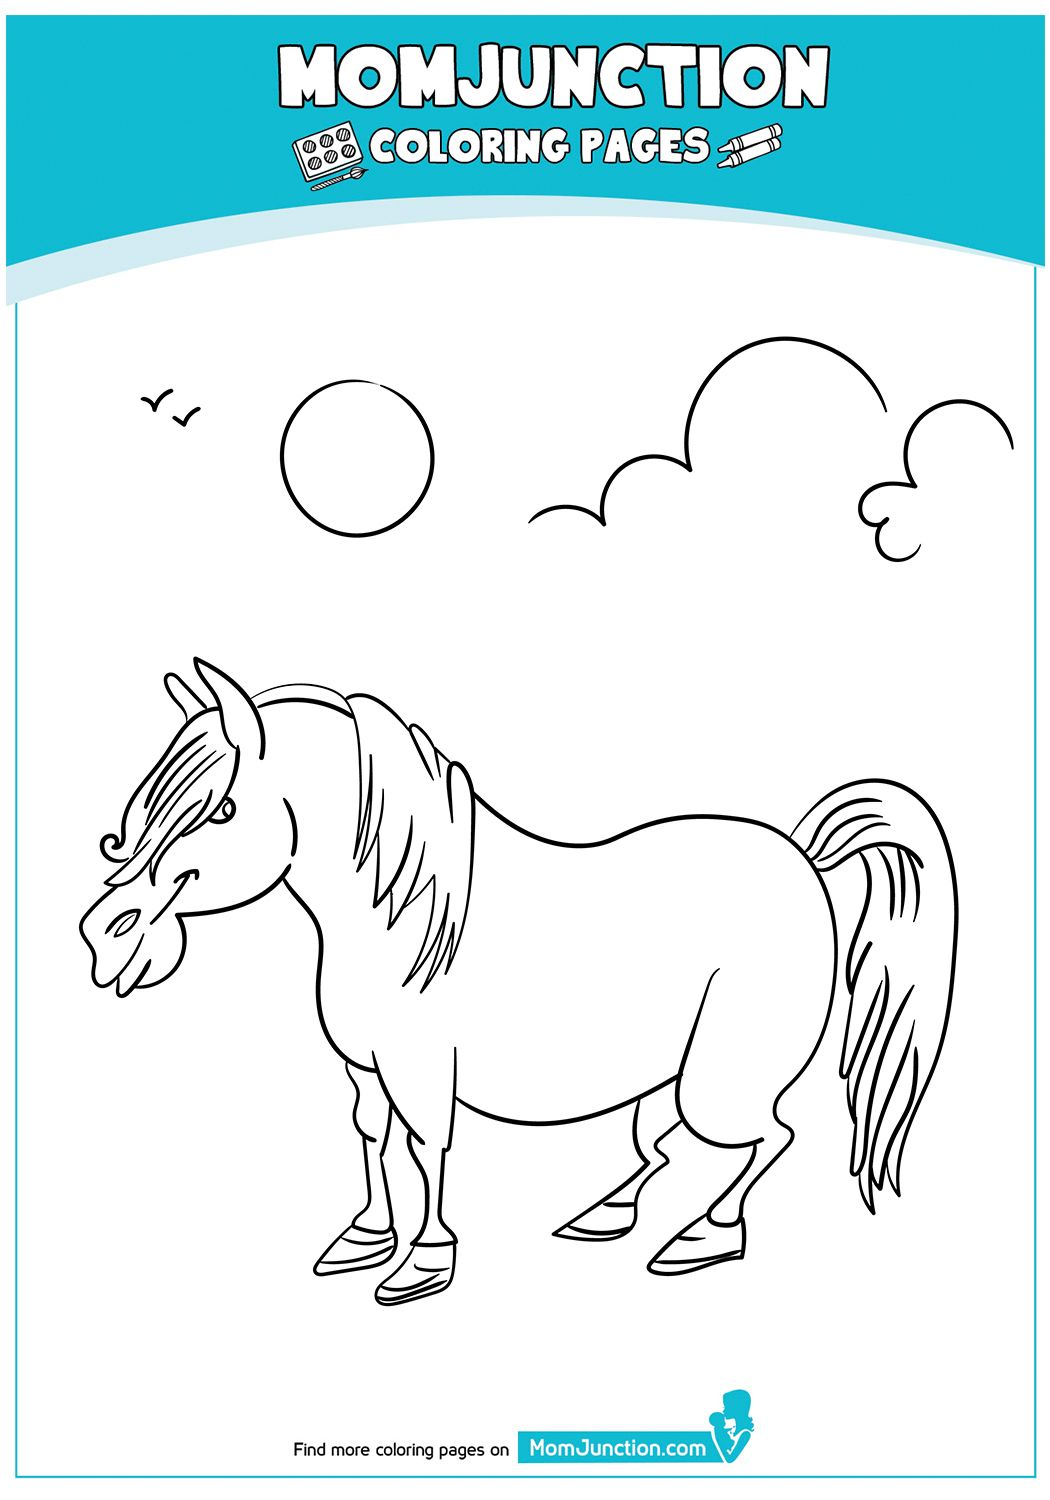 Shire Horse Coloring Pages Clydesdale Coloring Pages Gallery Photos Horse Coloring Horse Coloring Pages Coloring Pages [ 1168 x 1187 Pixel ]